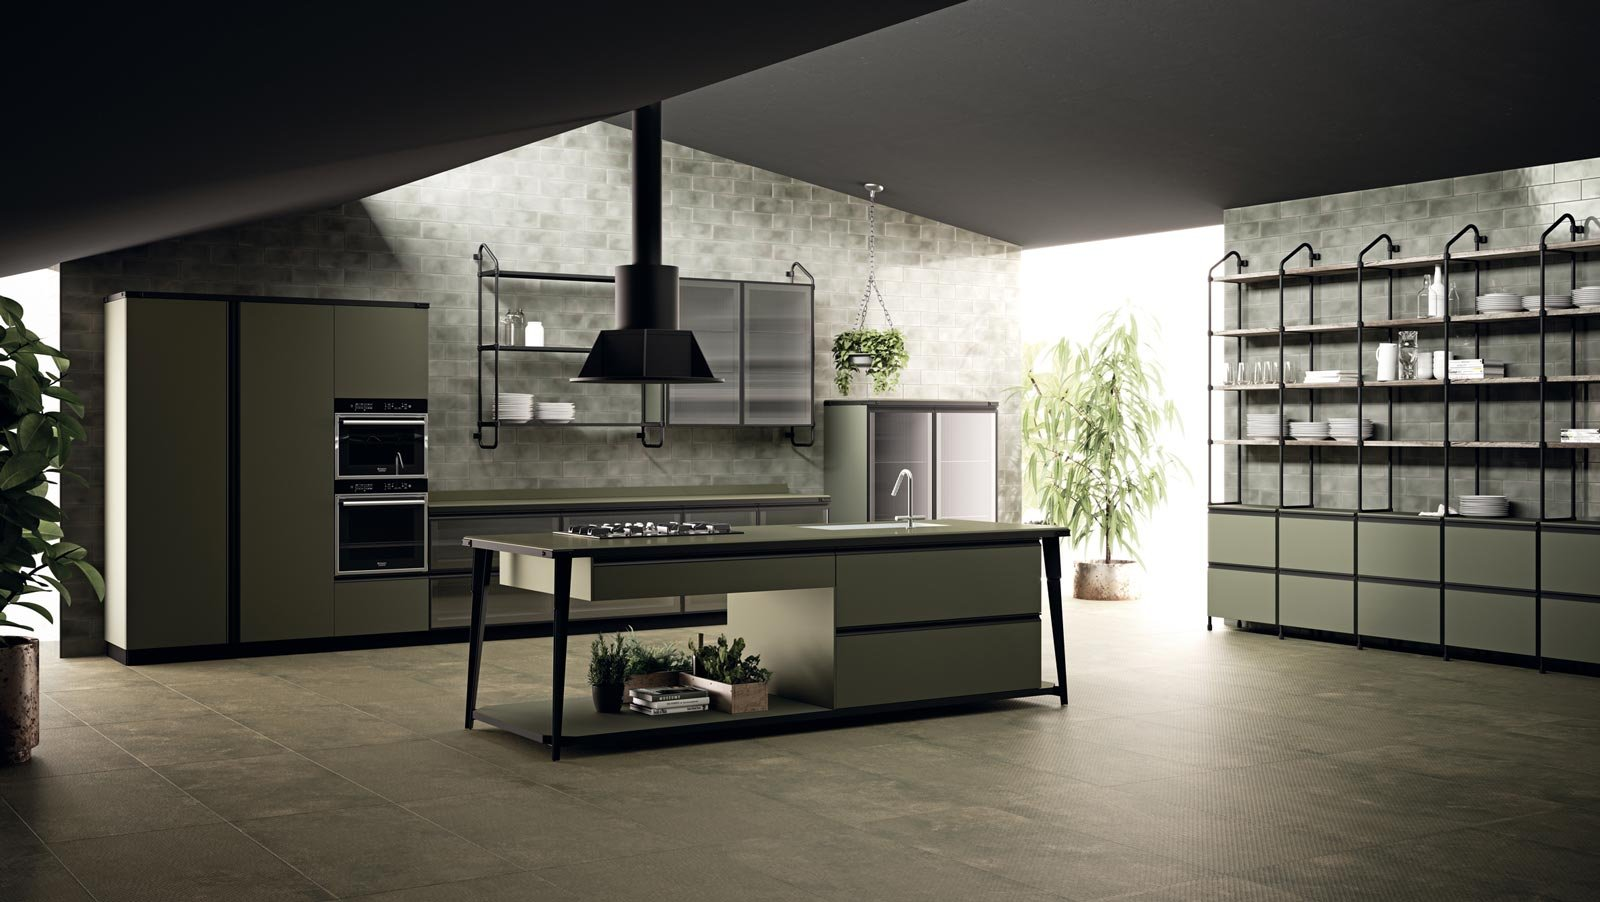 Ad eurocucina 2016 industrial chic nuovo moderno for Design moderno casa industriale